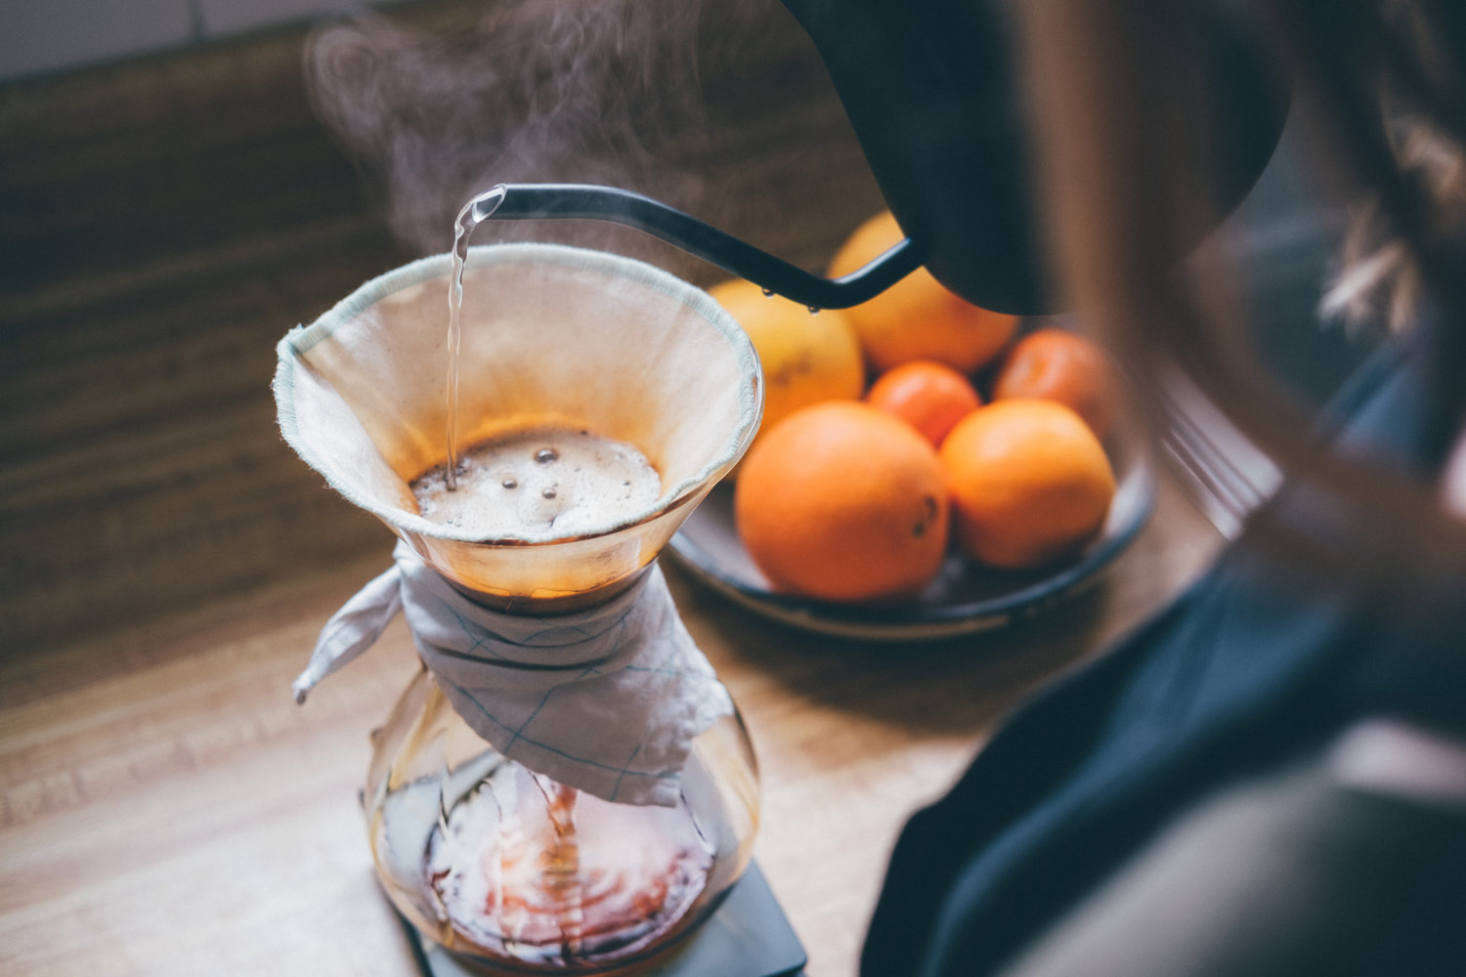 Ebb filters should be rinsed with water after each use, and never washed with soap. For the most consistent brew, GDS recommends storing the filter in water inside the refrigerator.